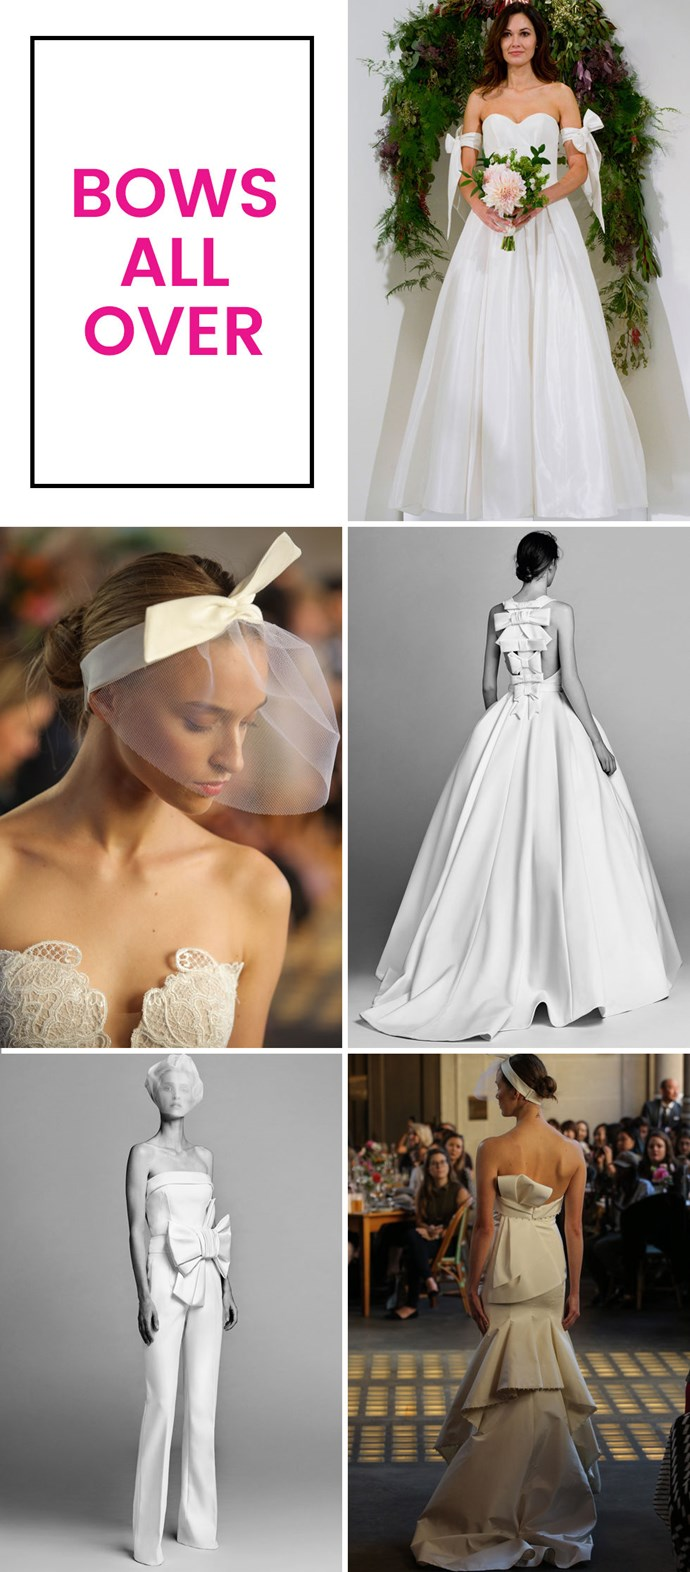 **6. Bows big and small. ** As seen at Watters, Lela Rose, Viktor & Rolf, and Truly Zac Posen. Knotted and folded and tied, bows are ubiquitous in bridal right now.